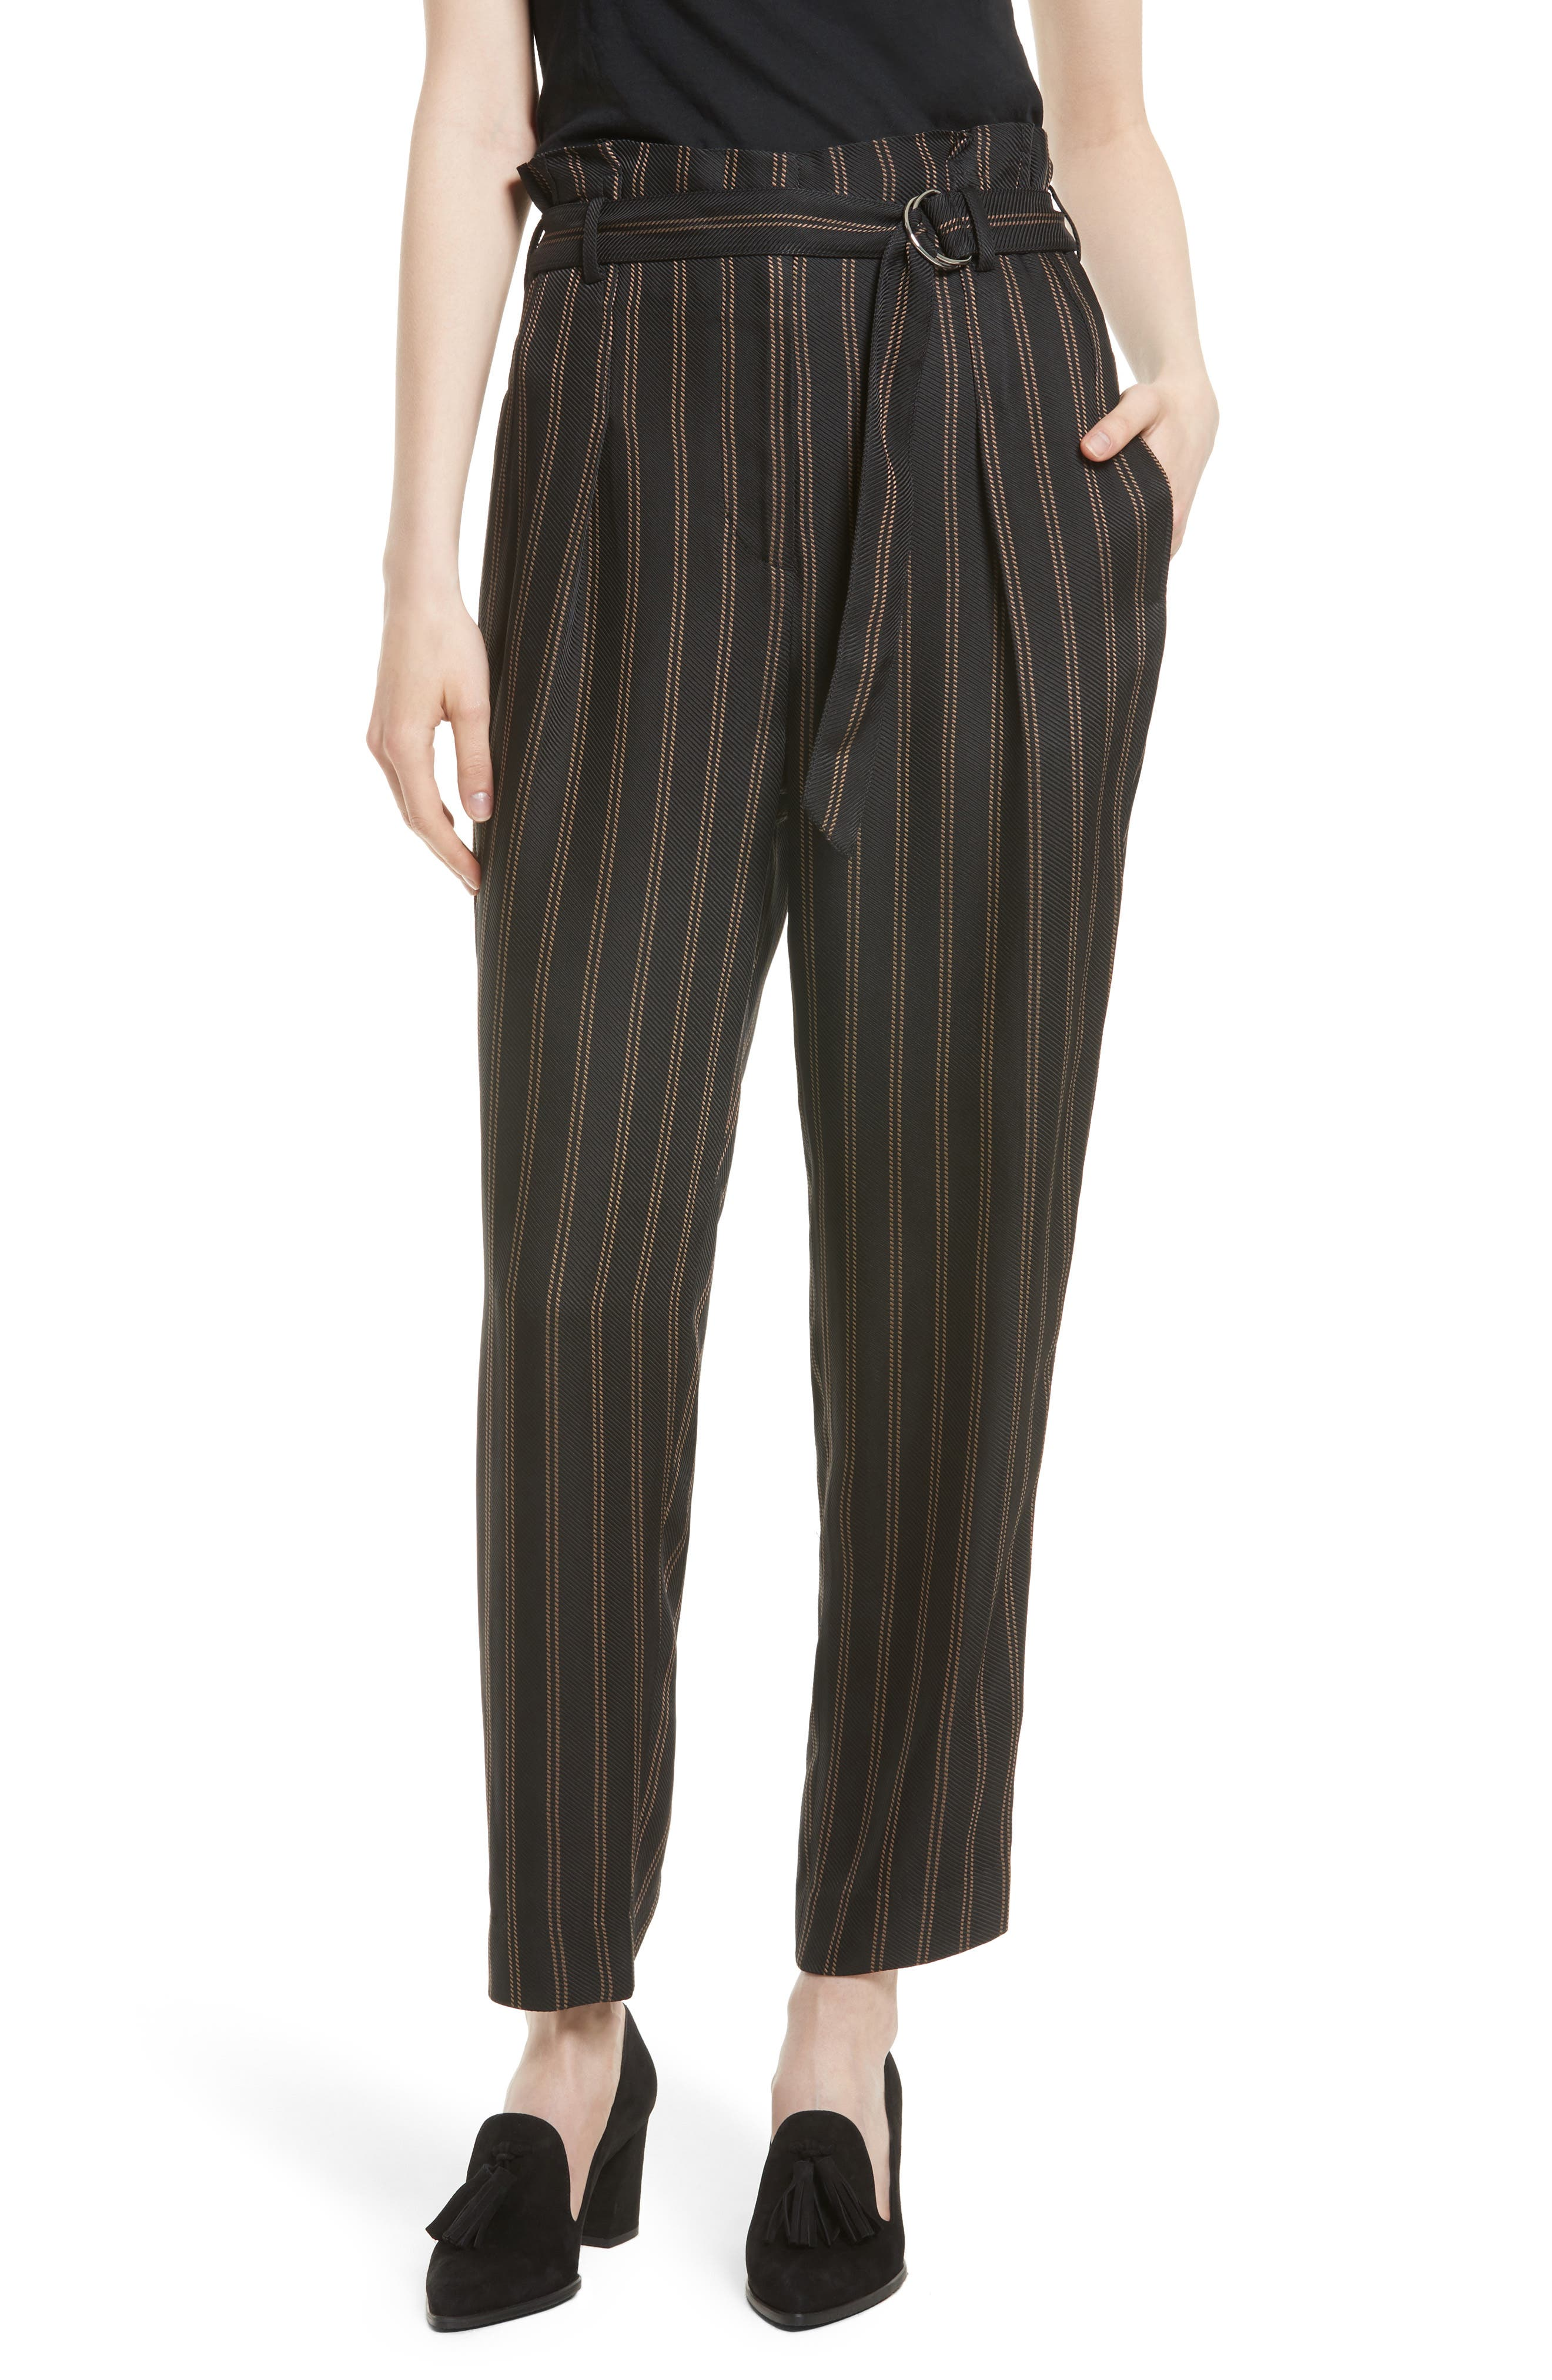 3.1 Phillip Lim Belted Pleat Crop Pants